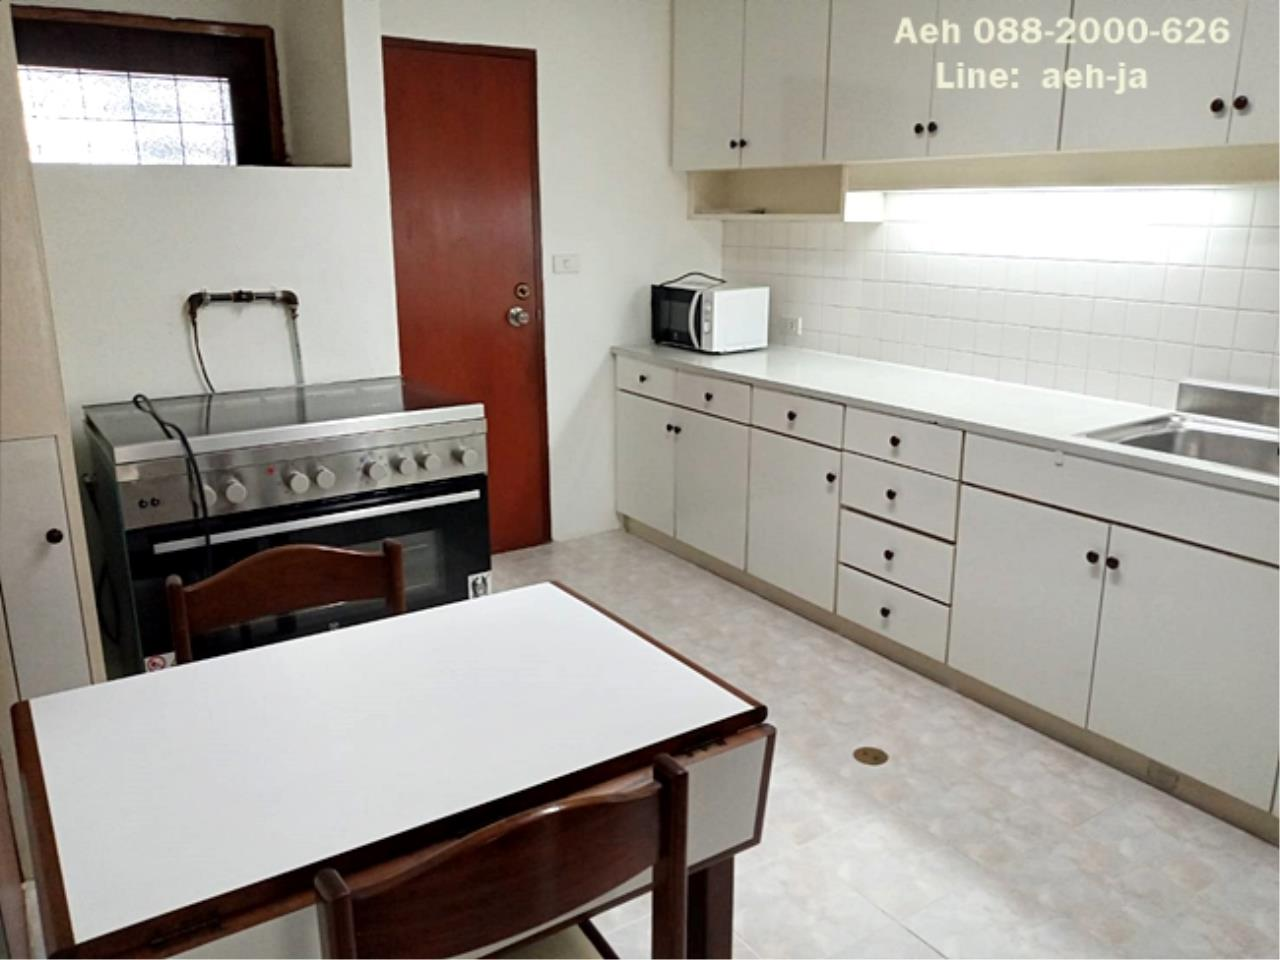 Agent - Aeh Pattanapaisal Agency's Pet Friendly!! Tubtim Mansion, 2 bedrooms for rent, BTS Phrom Phong THB 45,000/month 7